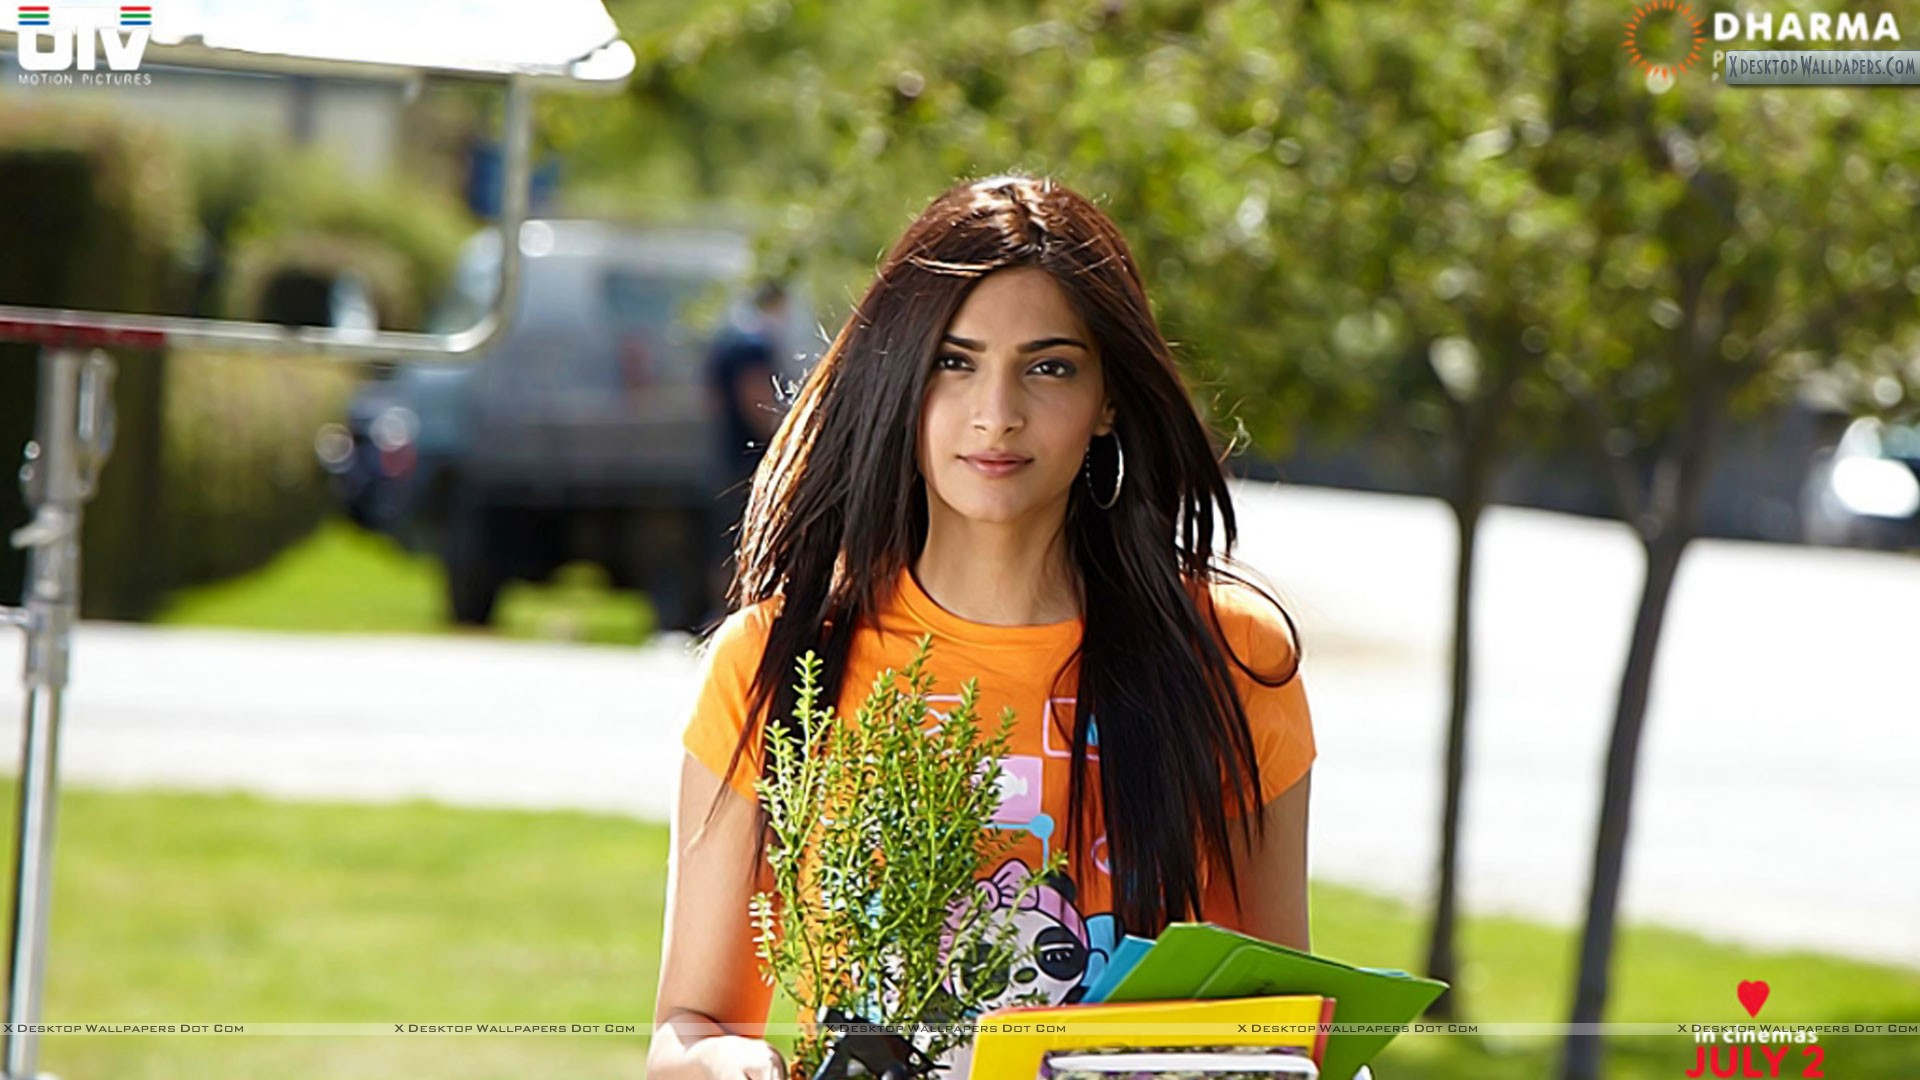 Sonam Kapoor in Orange Top I Hate Luv Story Movie Wallpaper 1920x1080